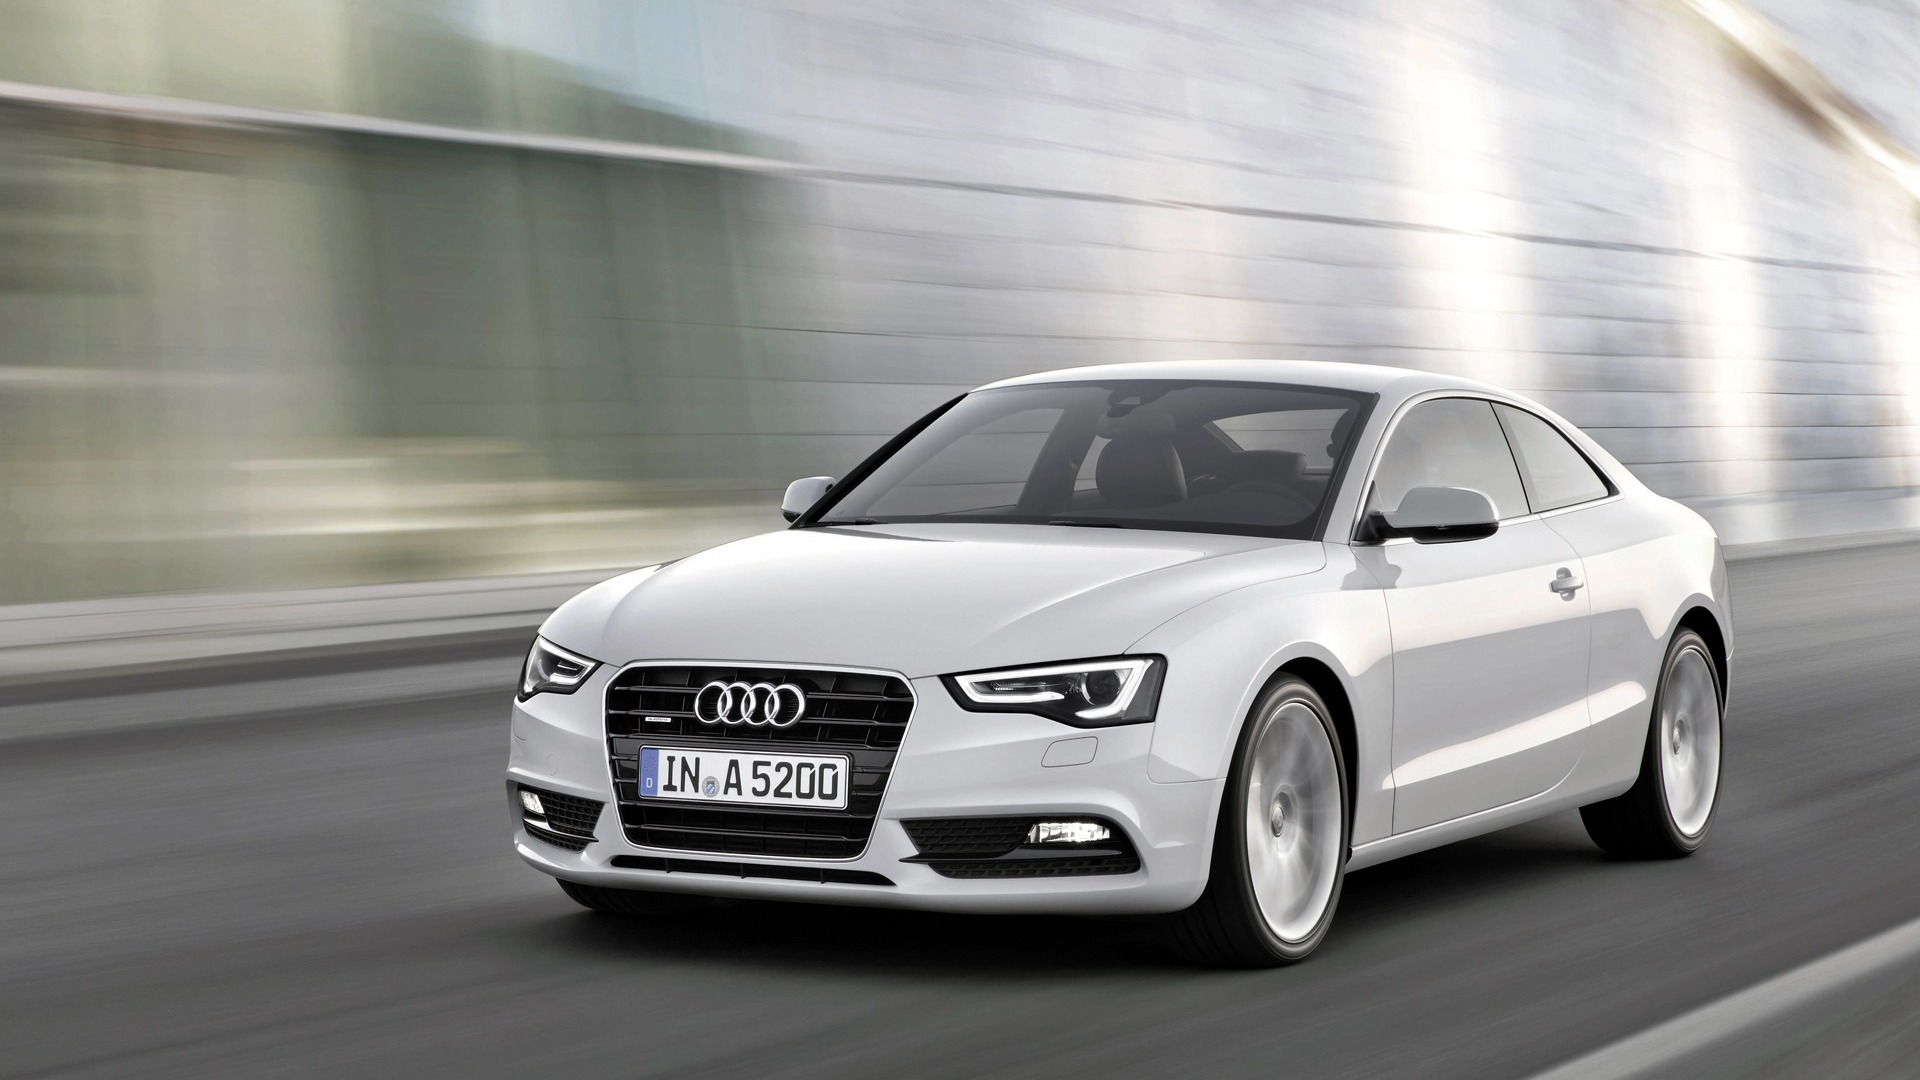 Audi A5 Coupe 2011 Hd Wallpapers 2 1920x1080 Wallpaper Download